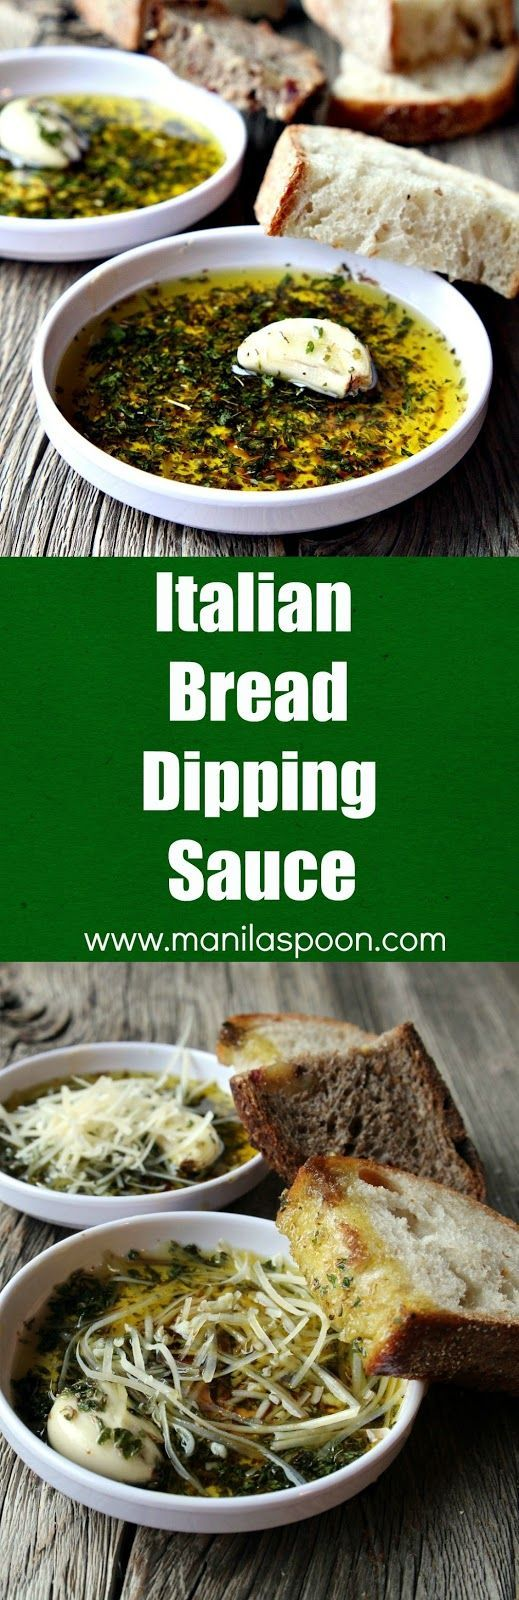 Restaurant-style sauce with Italian herbs and balsamic vinegar perfect for…